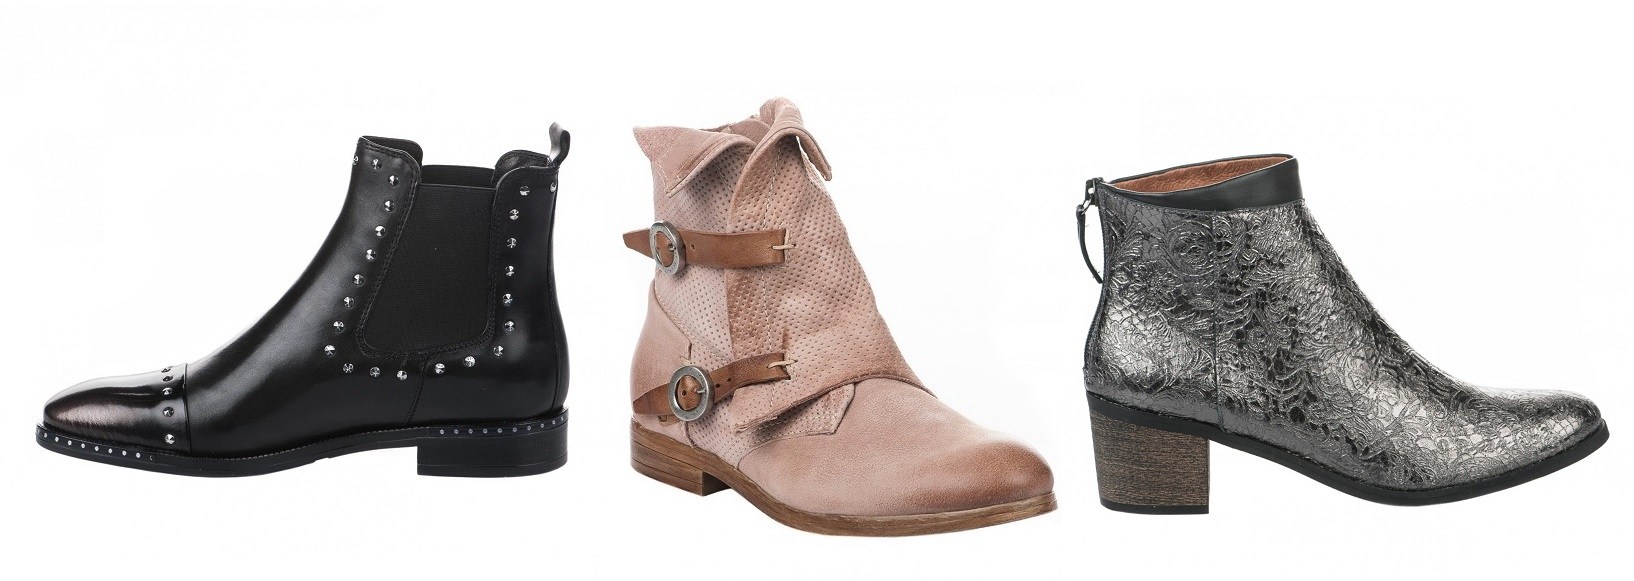 boots-rock-n-roll-bottines-feminines